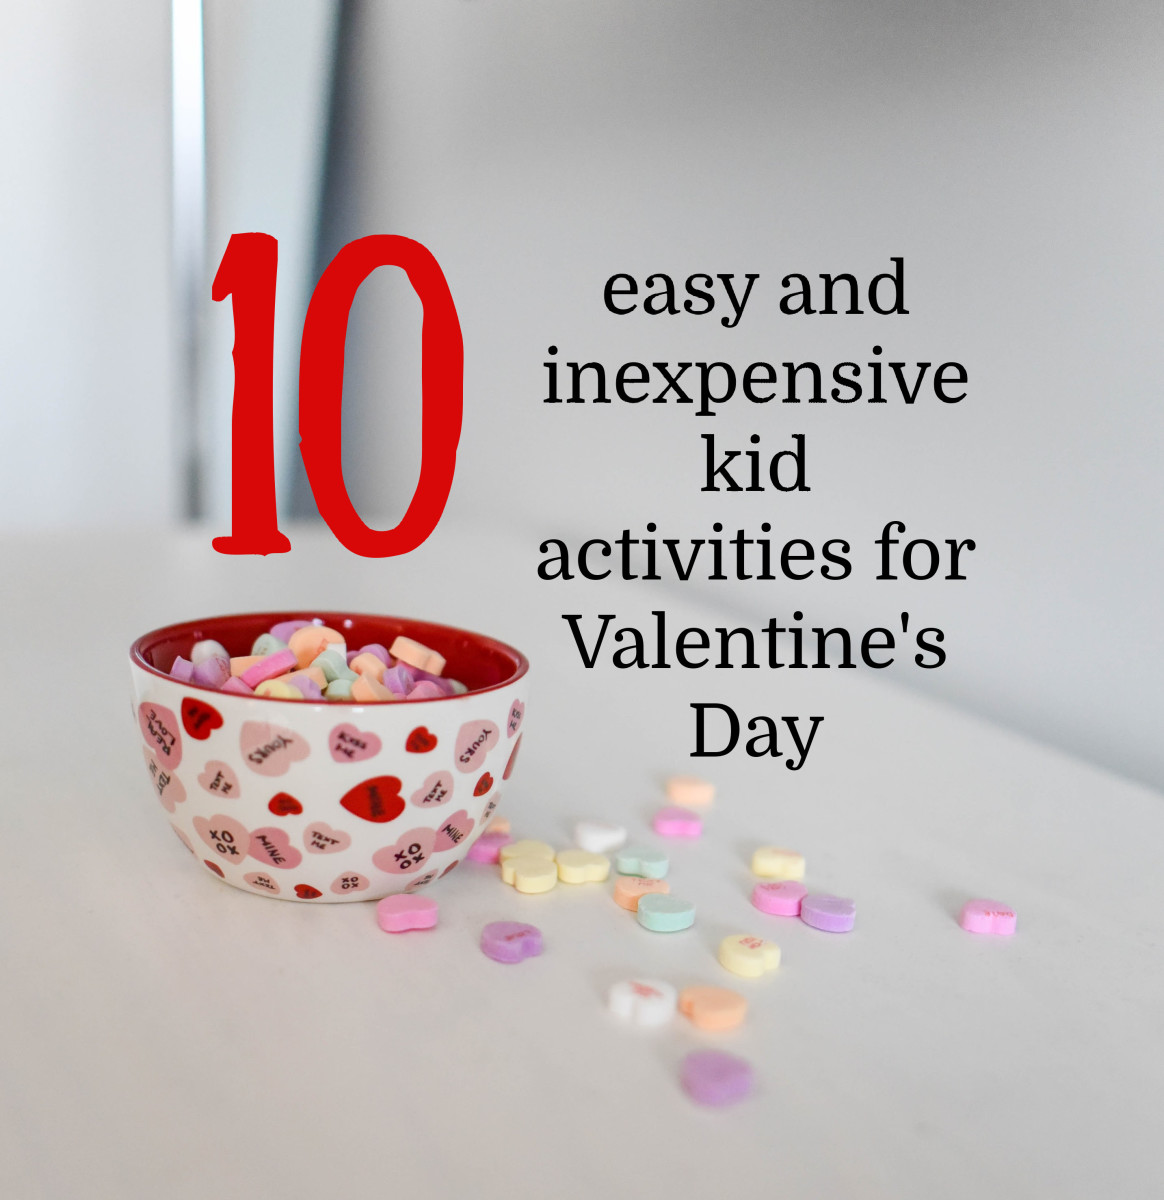 10 Valentine's Day Activities to Do With Your Kids